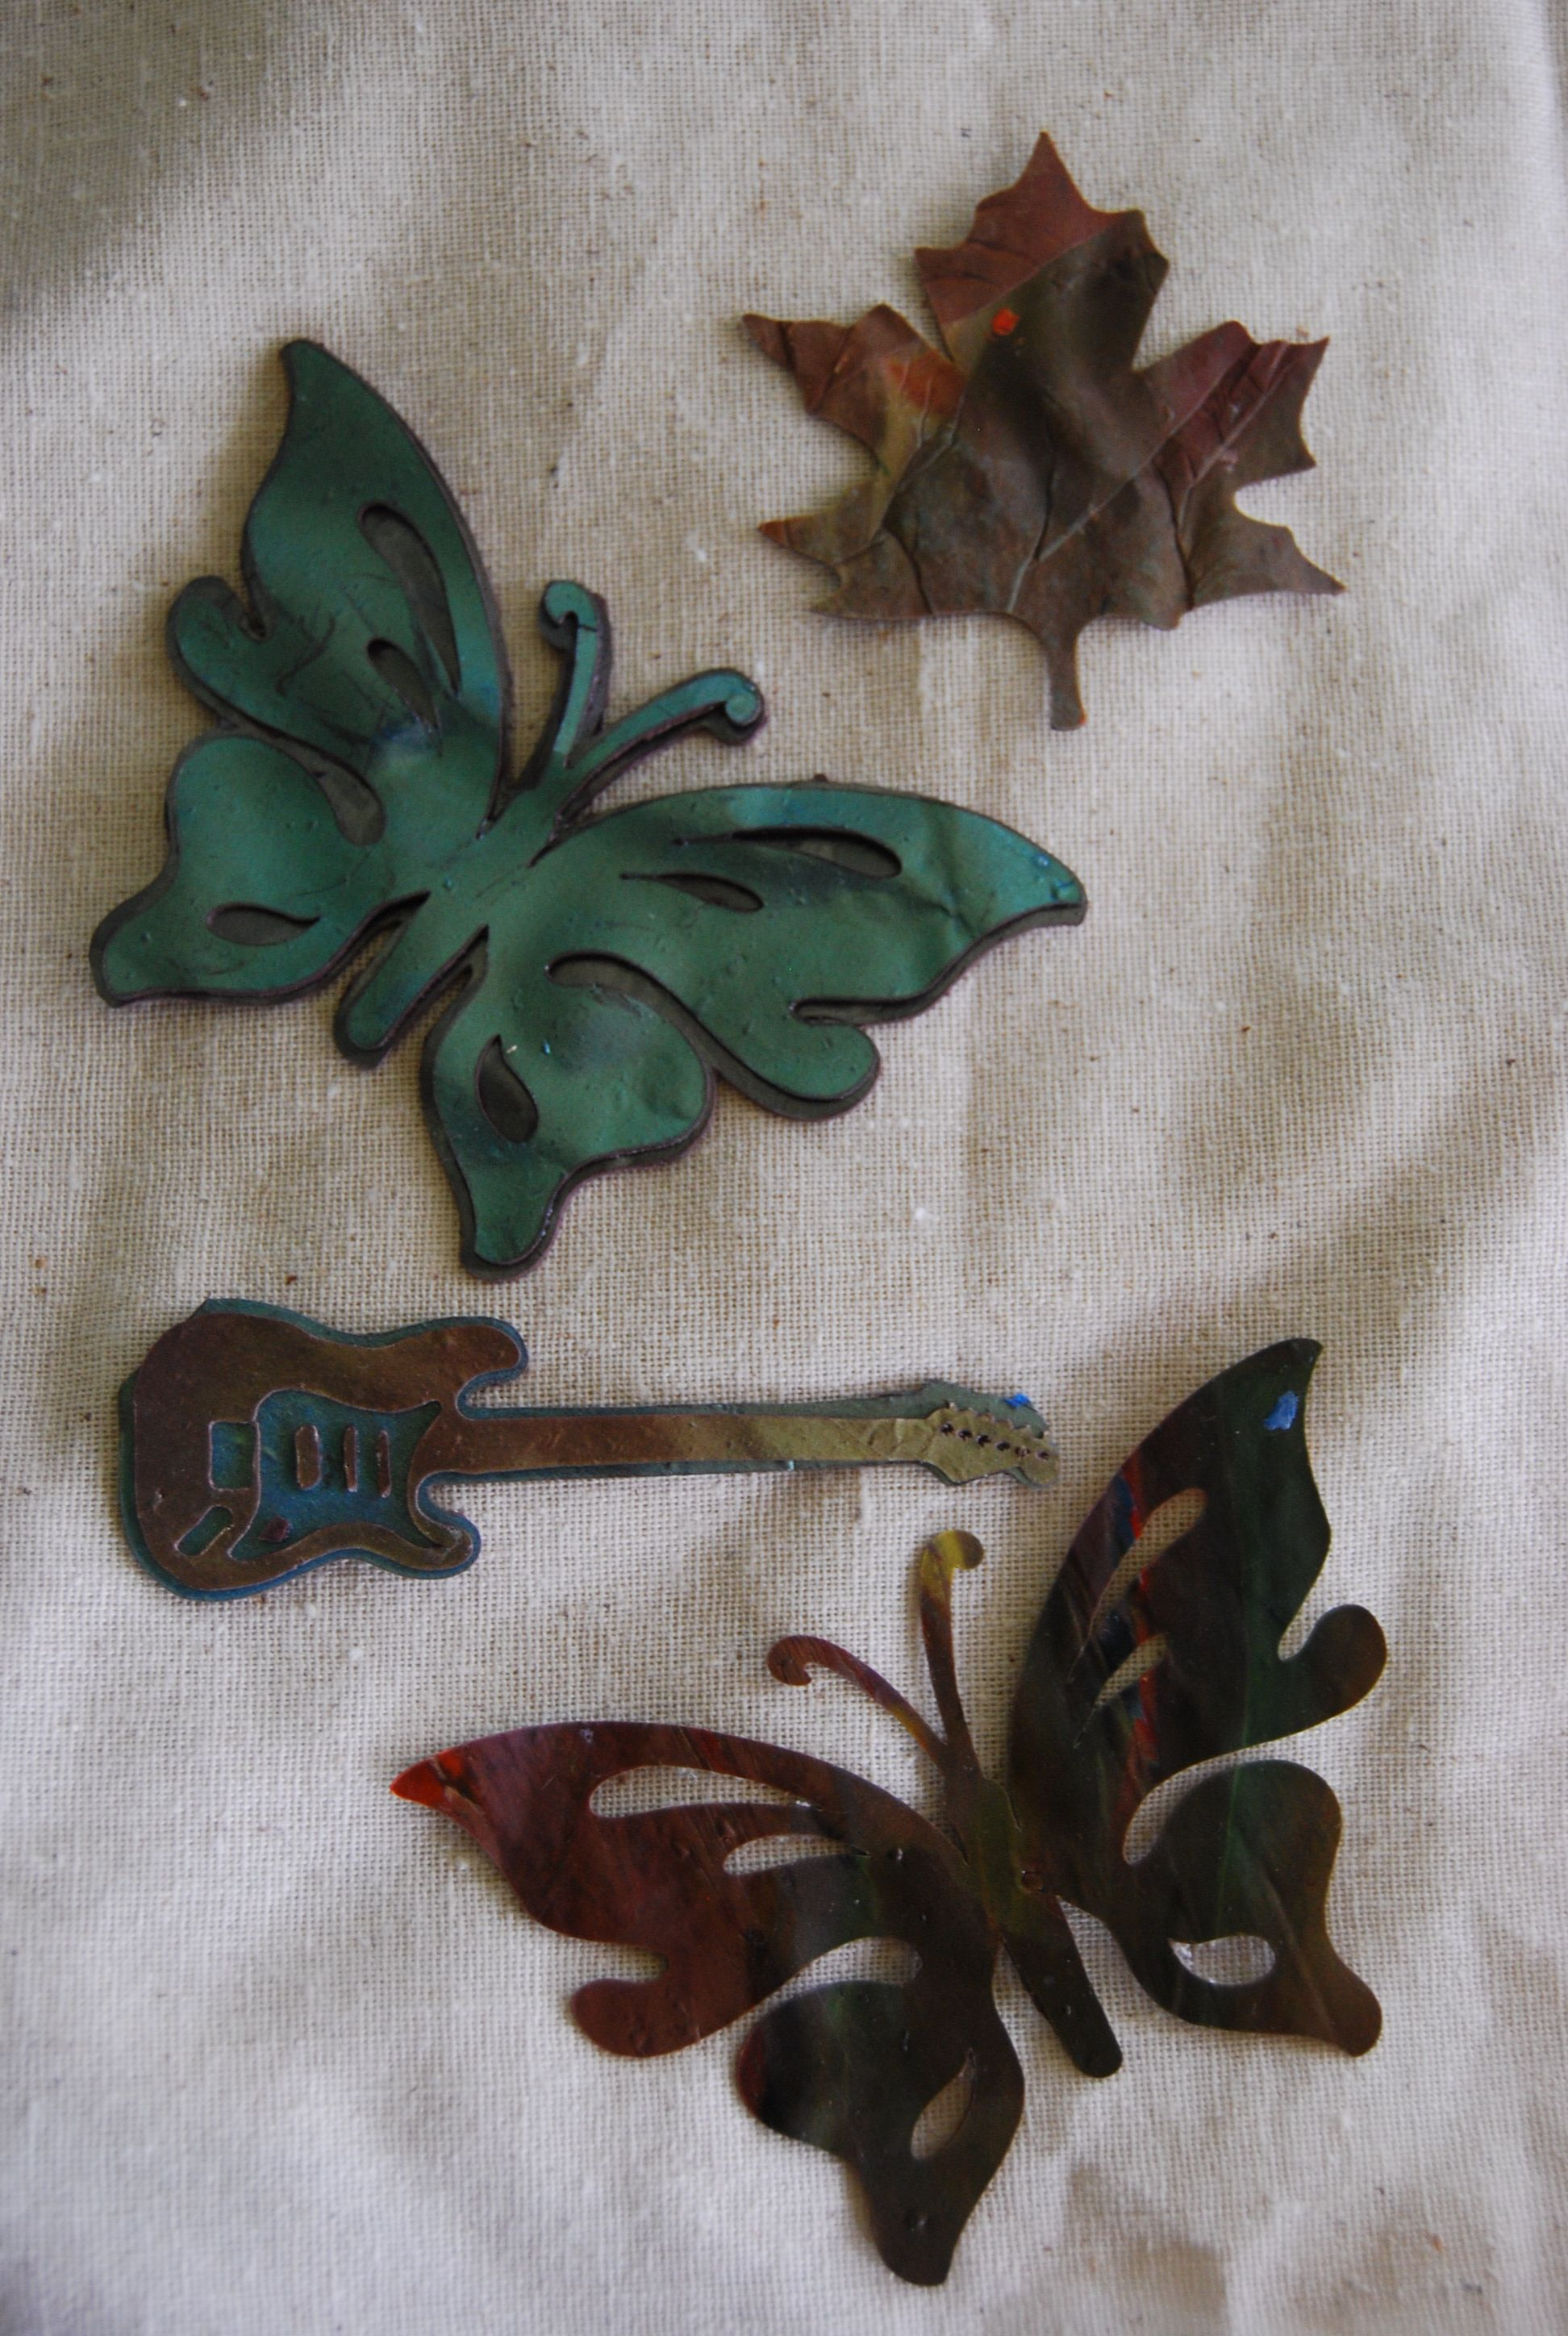 cutting polymer clay with the cricut  http://www.crafttestdummies.com/craft-projects-2/how-to-cut-polymer-clay-with-the-cricut/